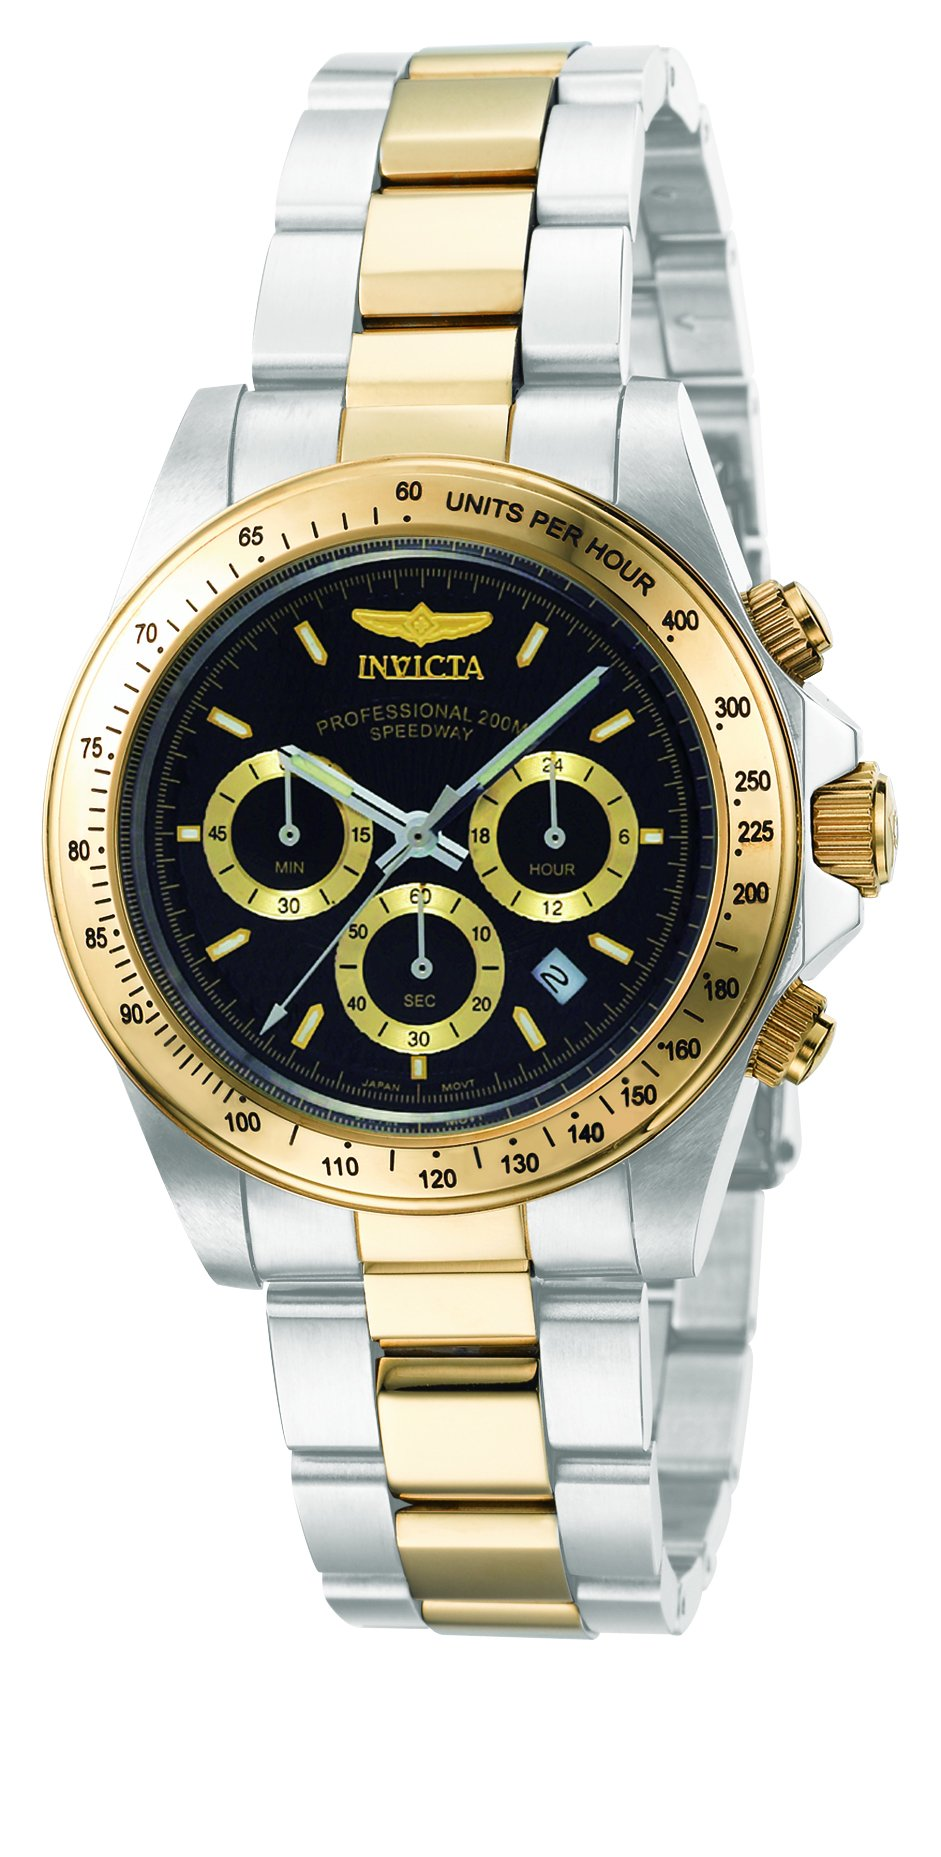 Invicta Men's 9224 Speedway Collection S Series Two-Tone Stainless Steel Watch with Link Bracelet by INVICTA